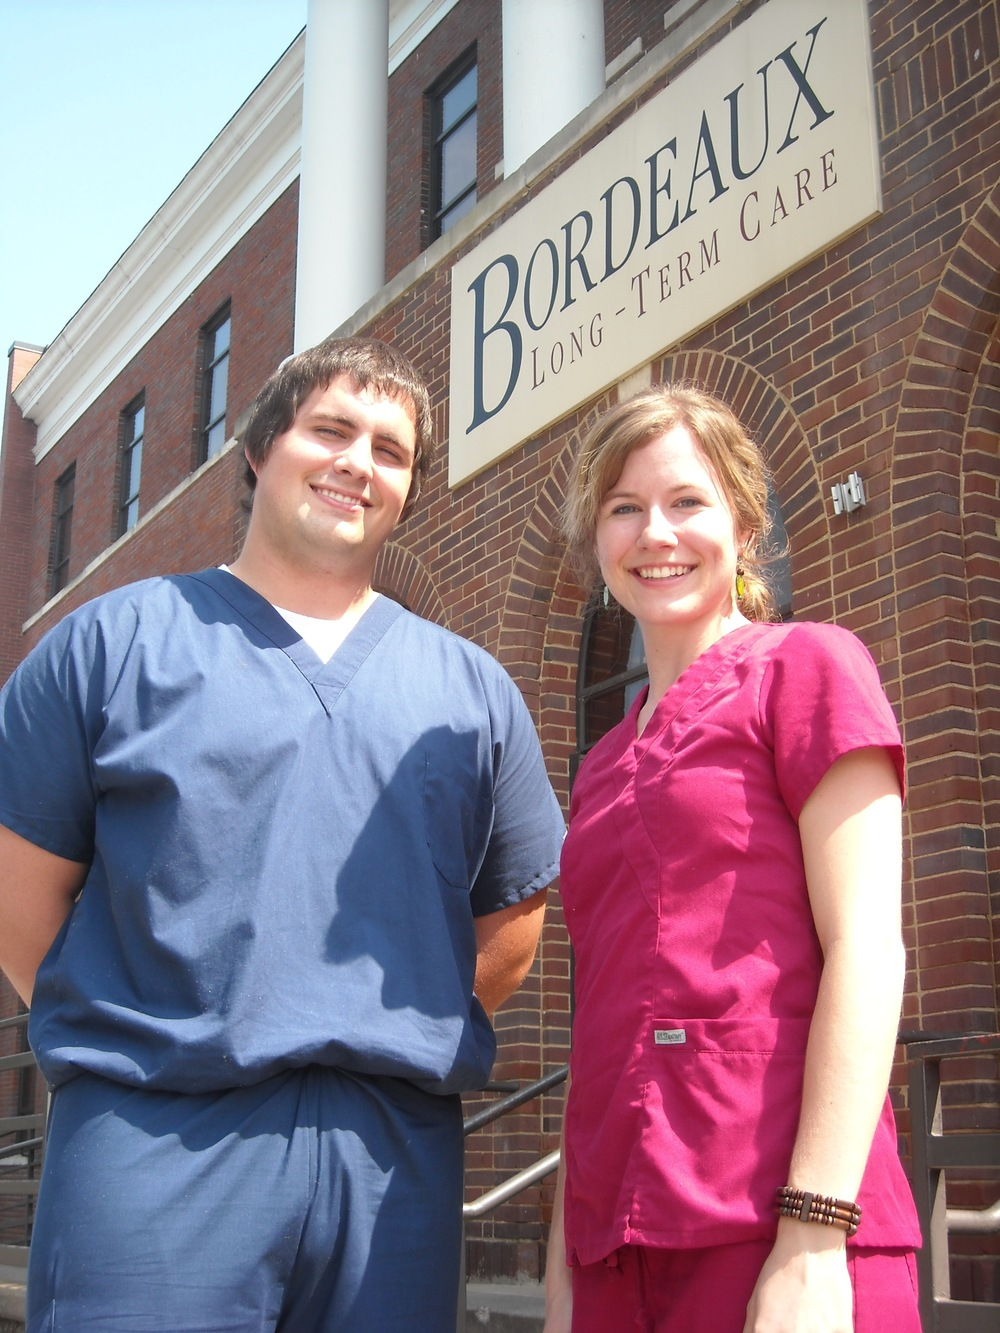 Nick Moore and Julie Cox worked five shifts at Bordeaux Long-Term Care in Nashville, TN, to complete the clinical portion of their nursing assistant training.